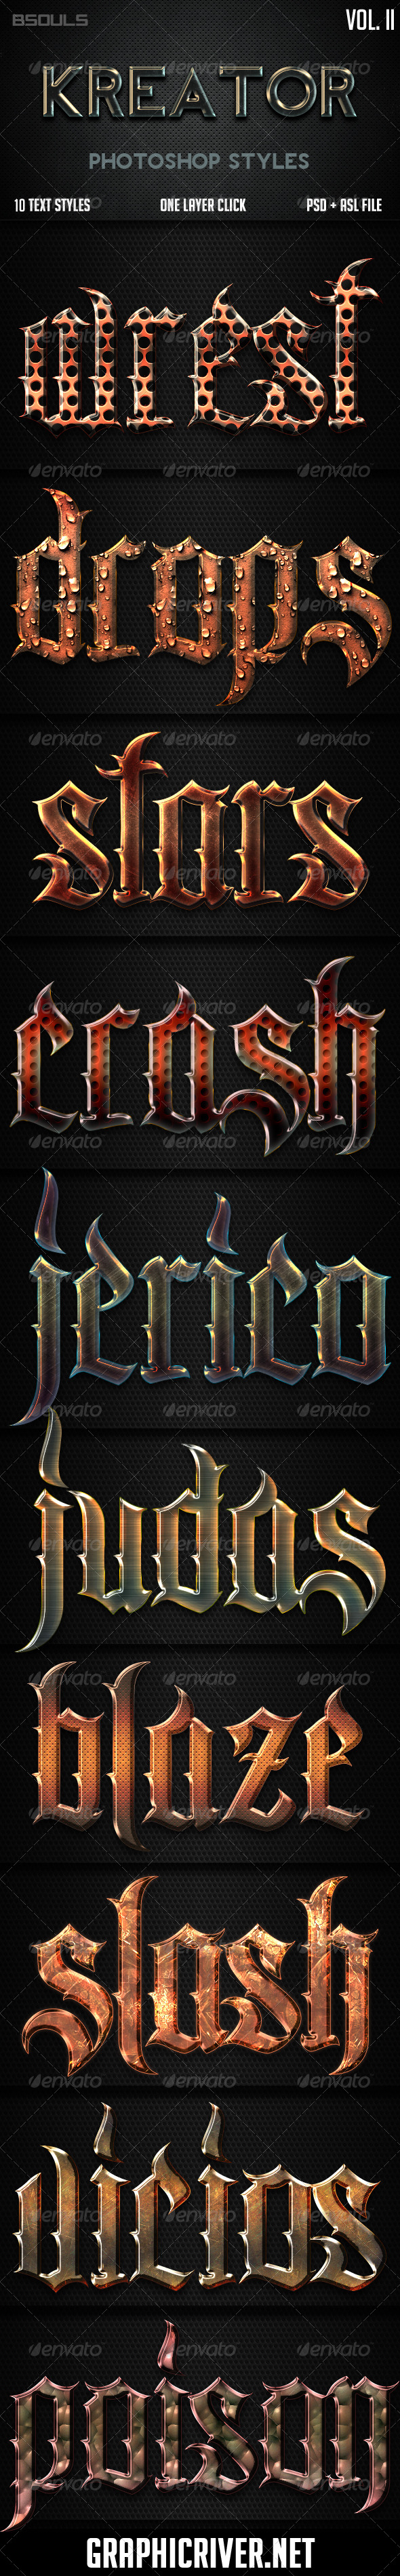 GraphicRiver Kreator Photoshop Styles Vol II 6618501